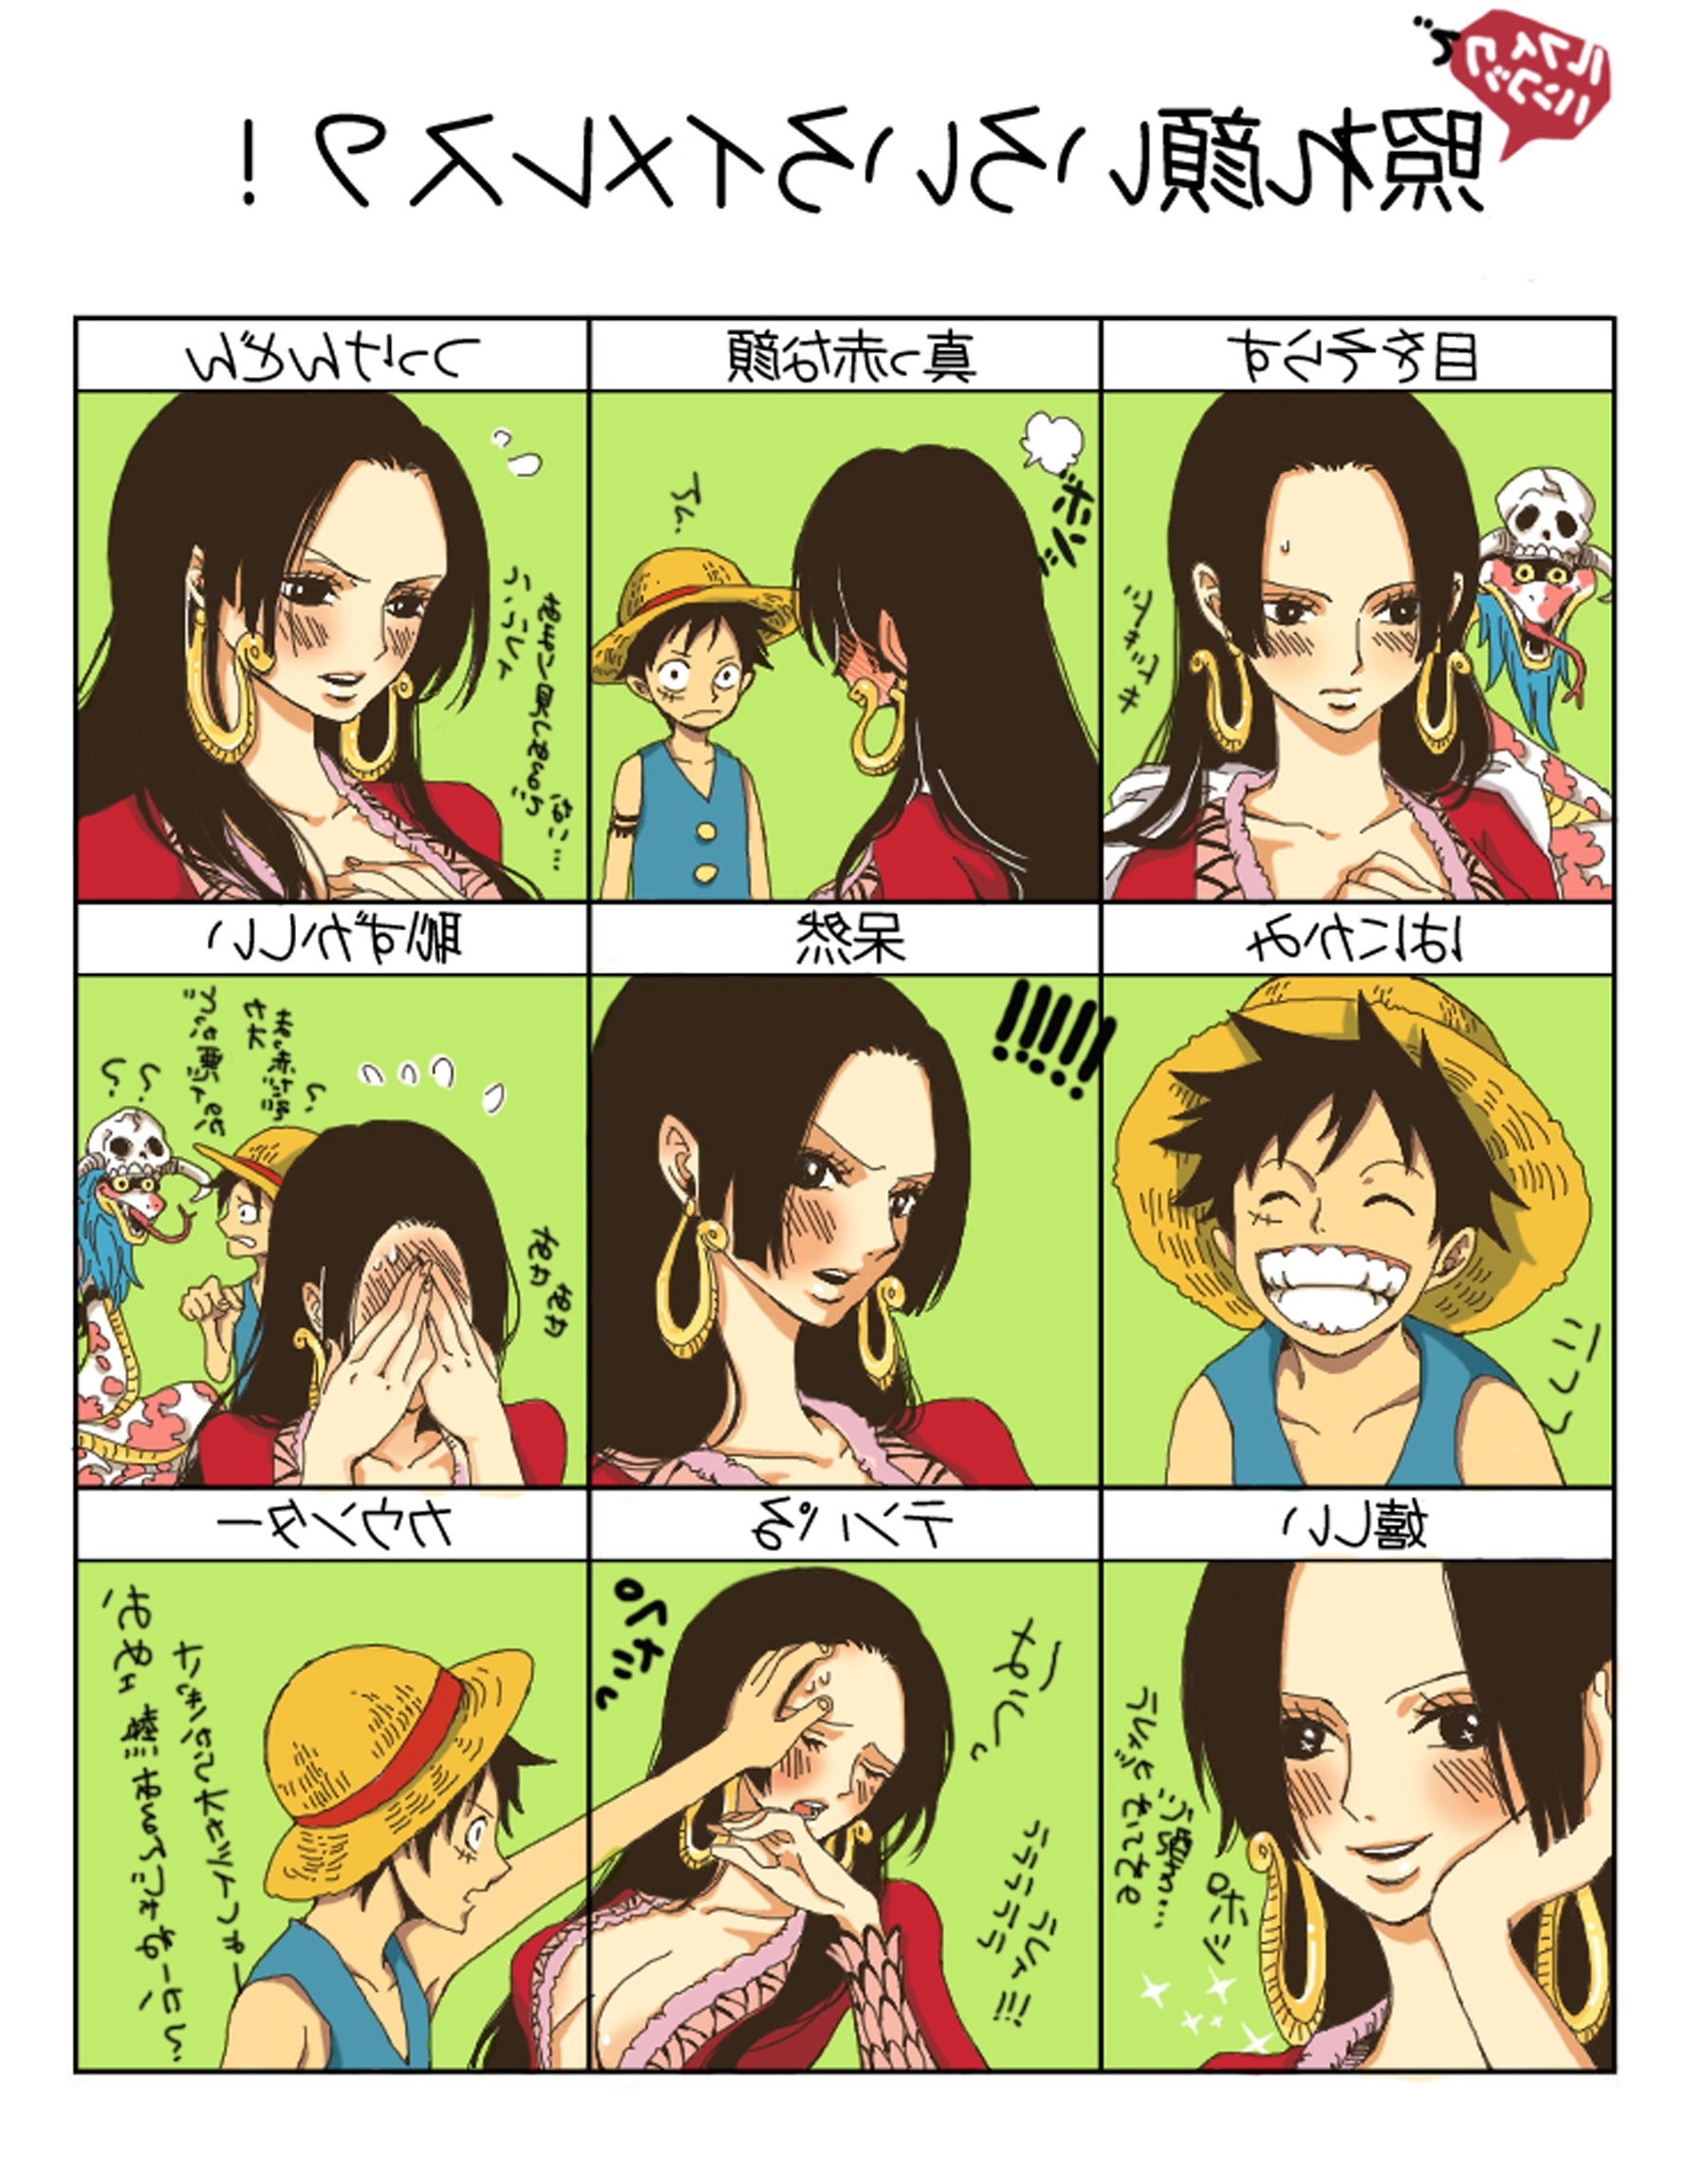 Toon sex pic ##00013061813 1boy female black hair blush boa hancock breasts cleavage earrings fever hat highres long hair monkey d luffy one piece salome (one piece) scar skull snake spotted straw hat translation request vest